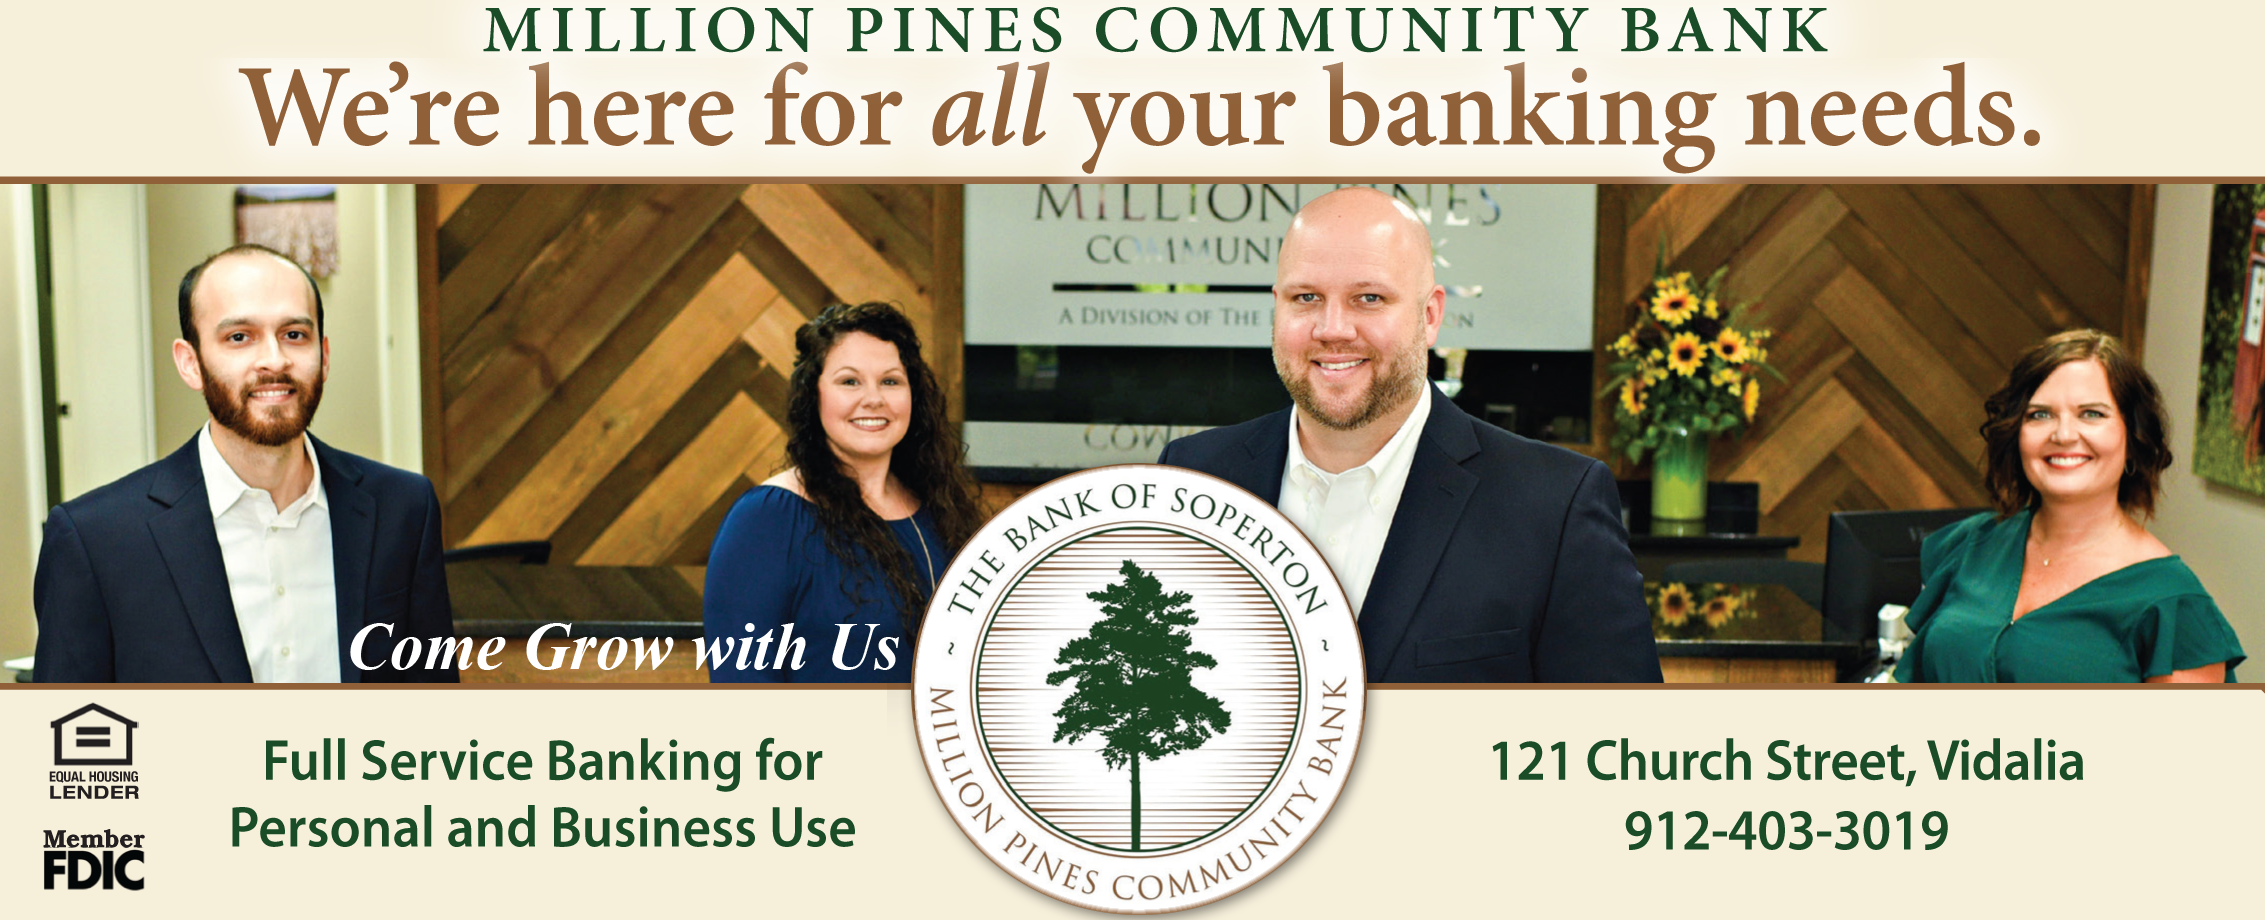 Million Pines Community Bank - Secure Checking